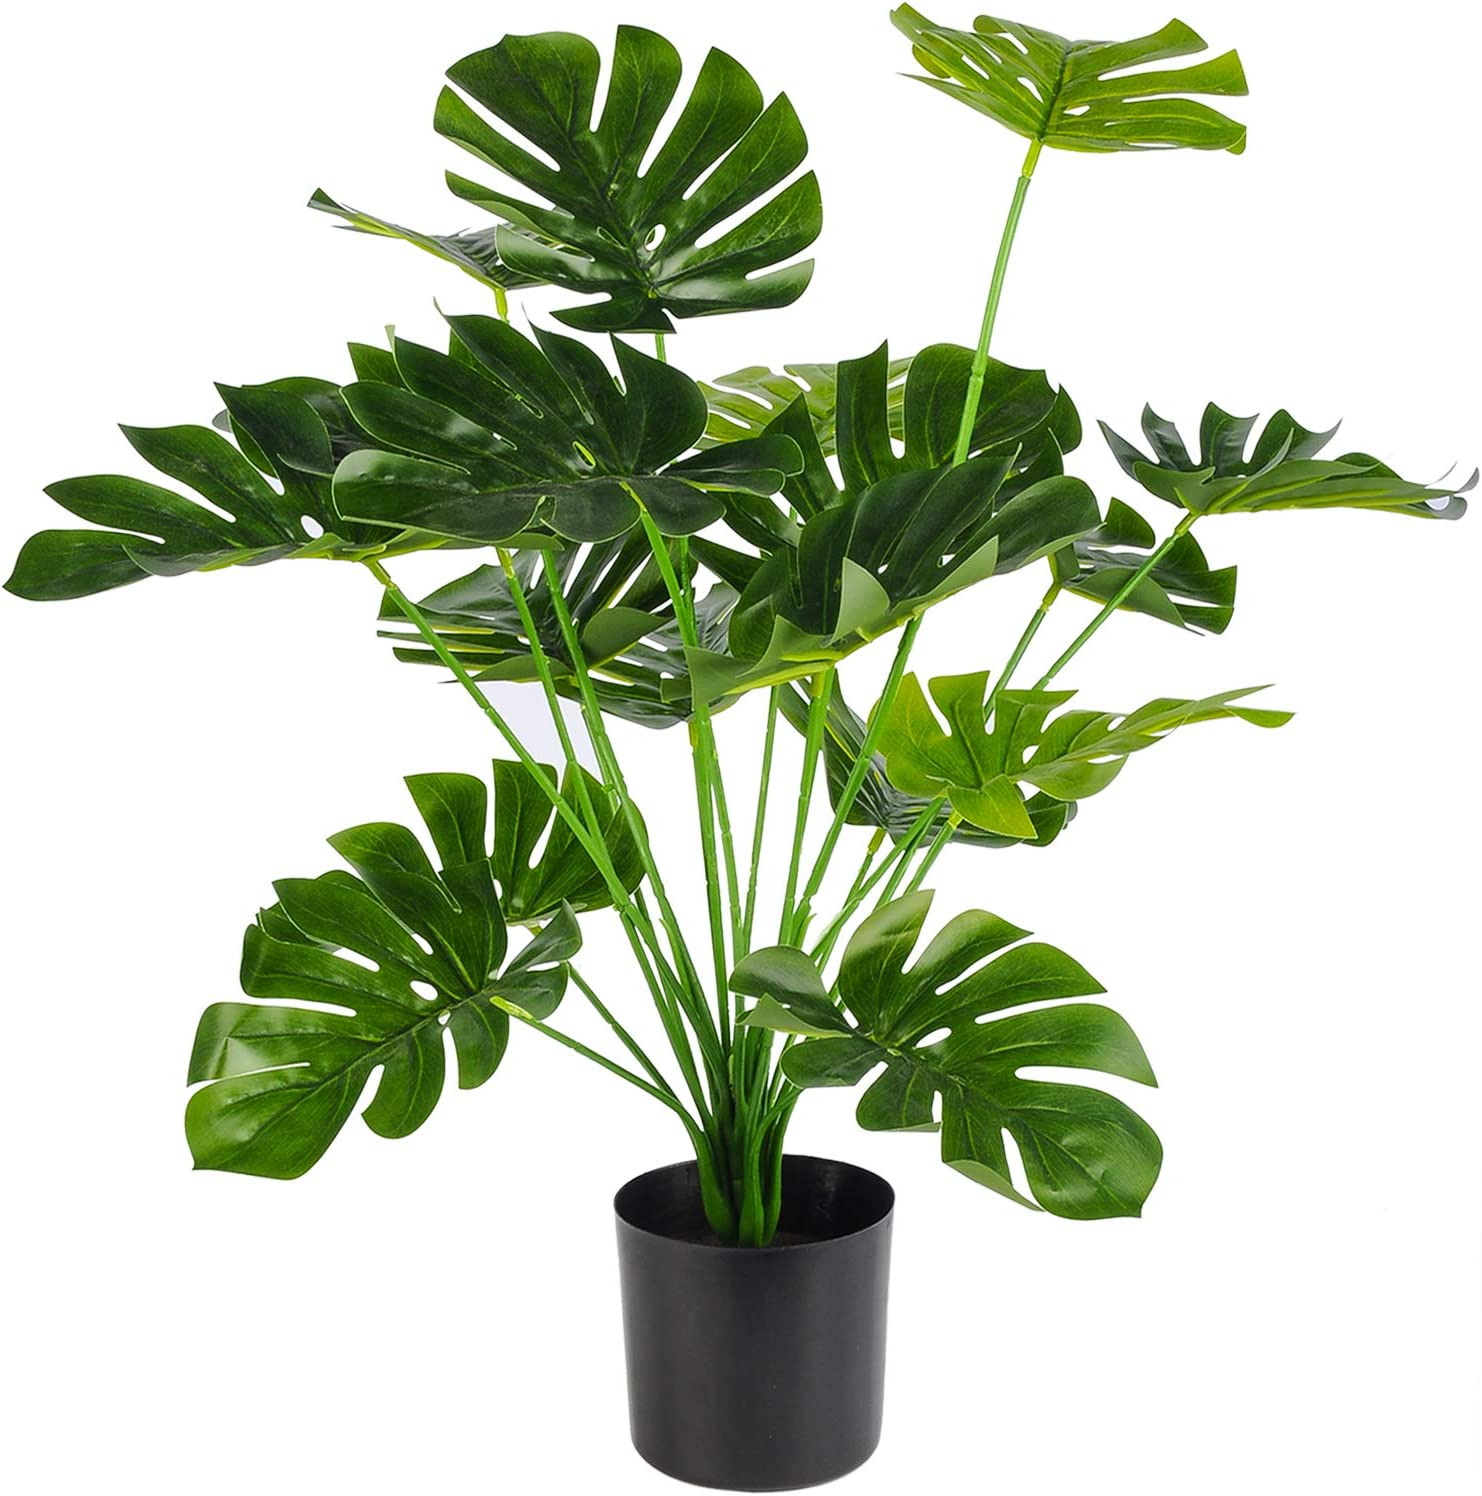 "Toopify Artificial Palm Tree, 28"" Fake Monstera Deliciosa Plant in Pot for Indoor and Outdoor Home Office Decor"